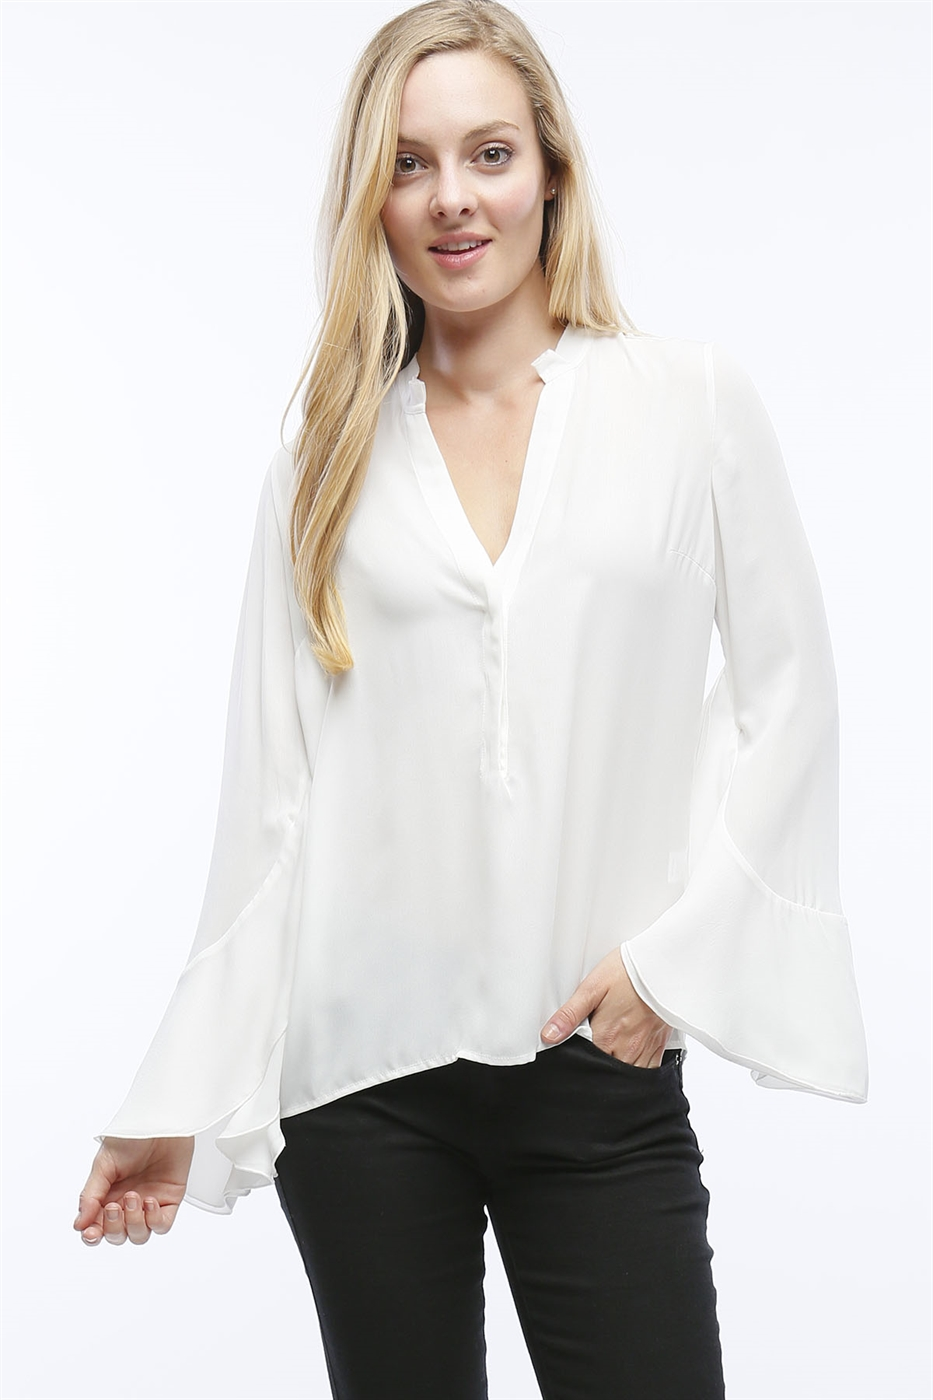 BELL SLEEVE V-NECK TOP - orangeshine.com